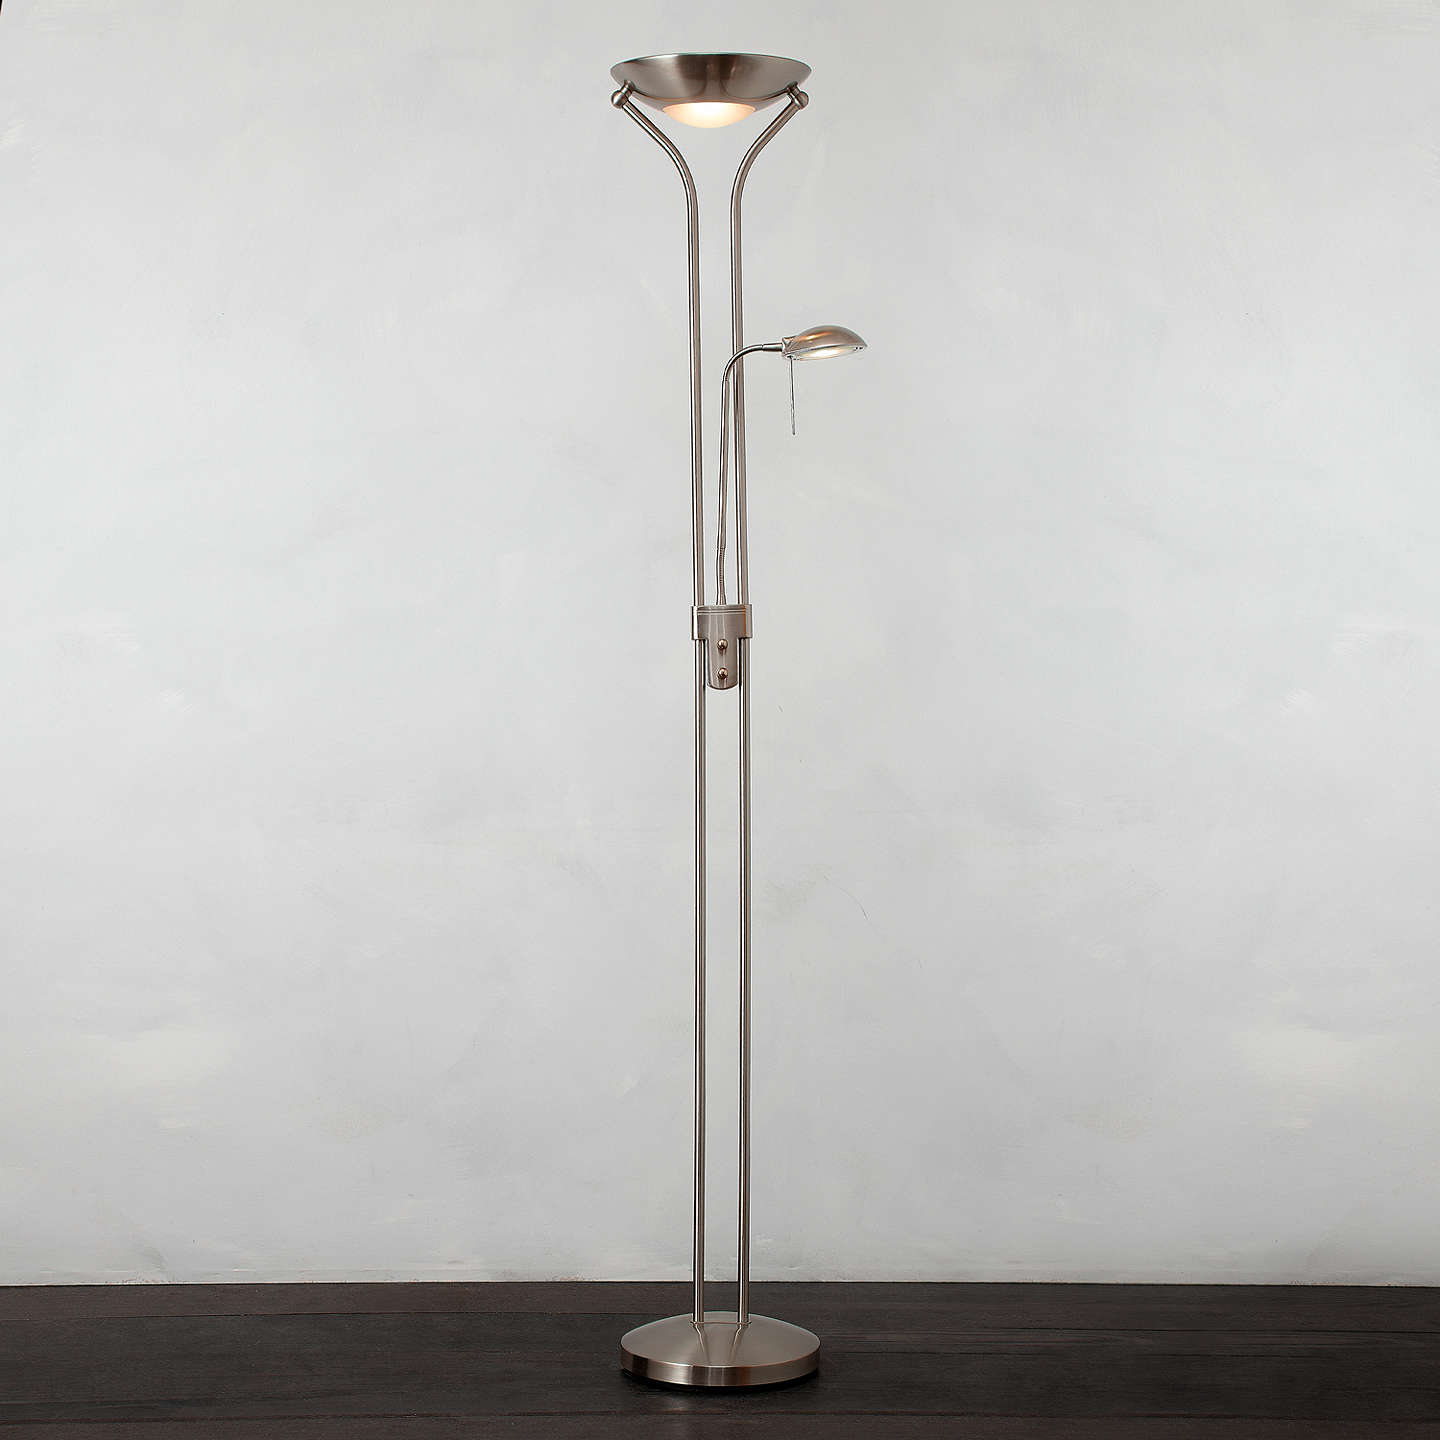 John lewis zella uplighter floor lamp at john lewis buyjohn lewis zella uplighter floor lamp stainless steel online at johnlewis aloadofball Image collections